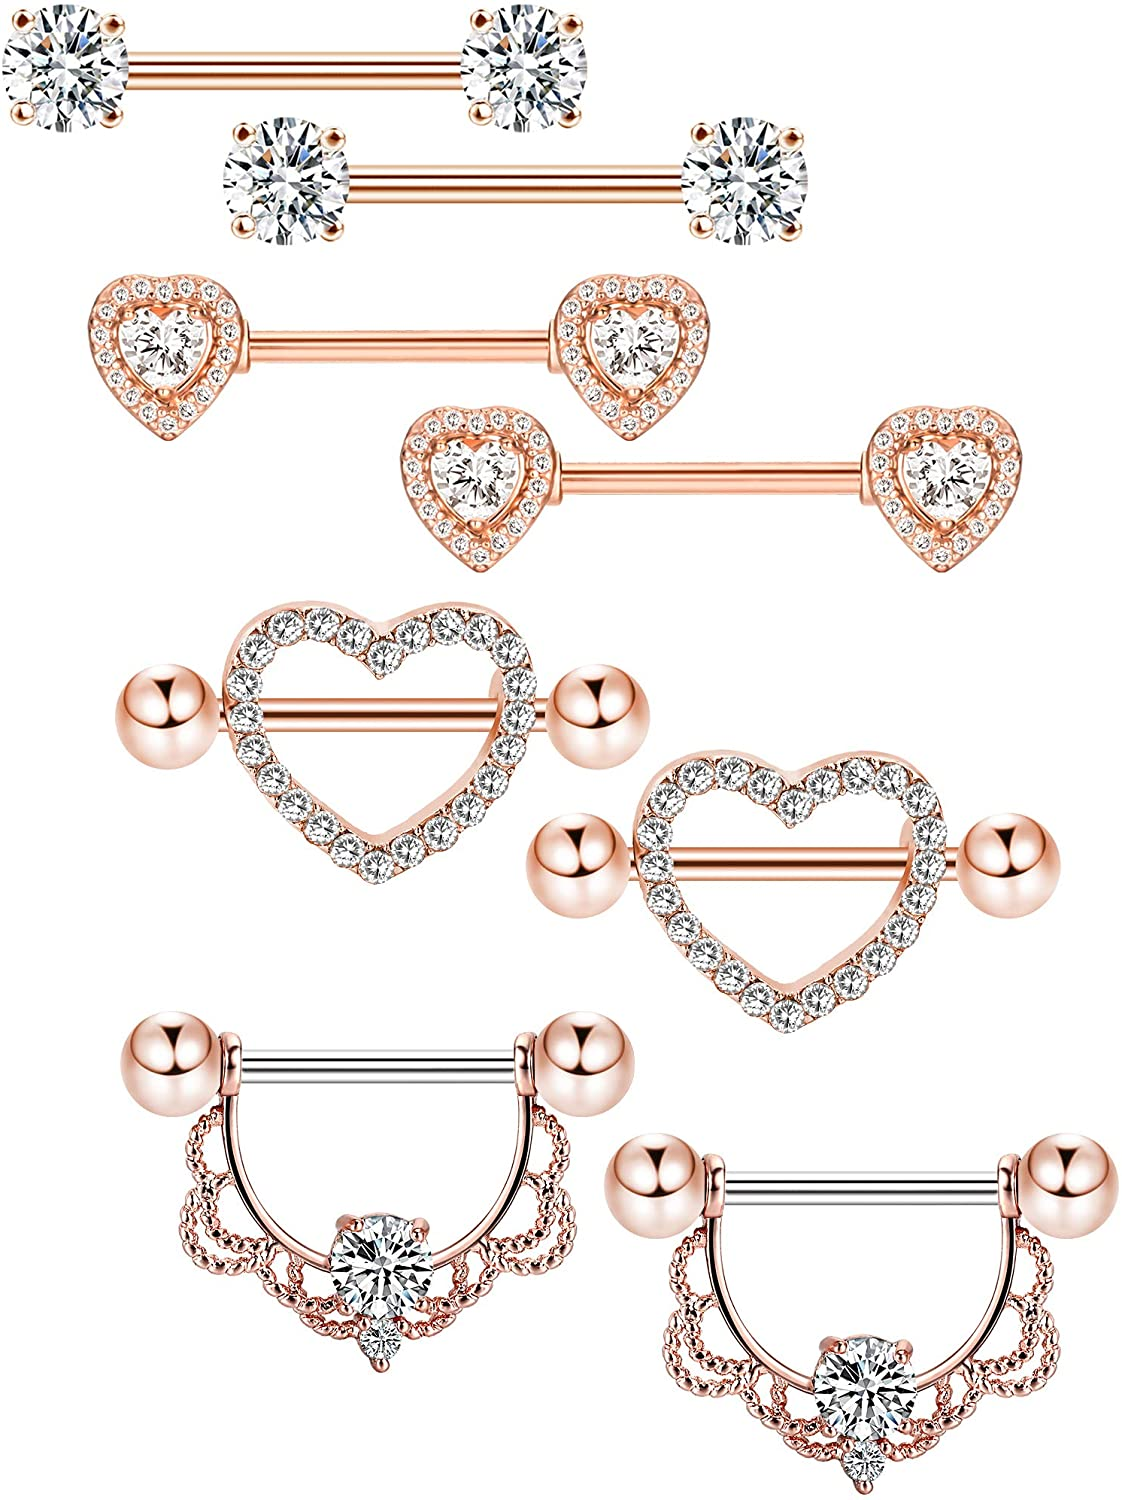 Tatuo 4 Pairs Stainless Steel Nipple Rings Tongue Ring Piercing Body Jewelry Barbell CZ Heart Shape Rings for Women Girls